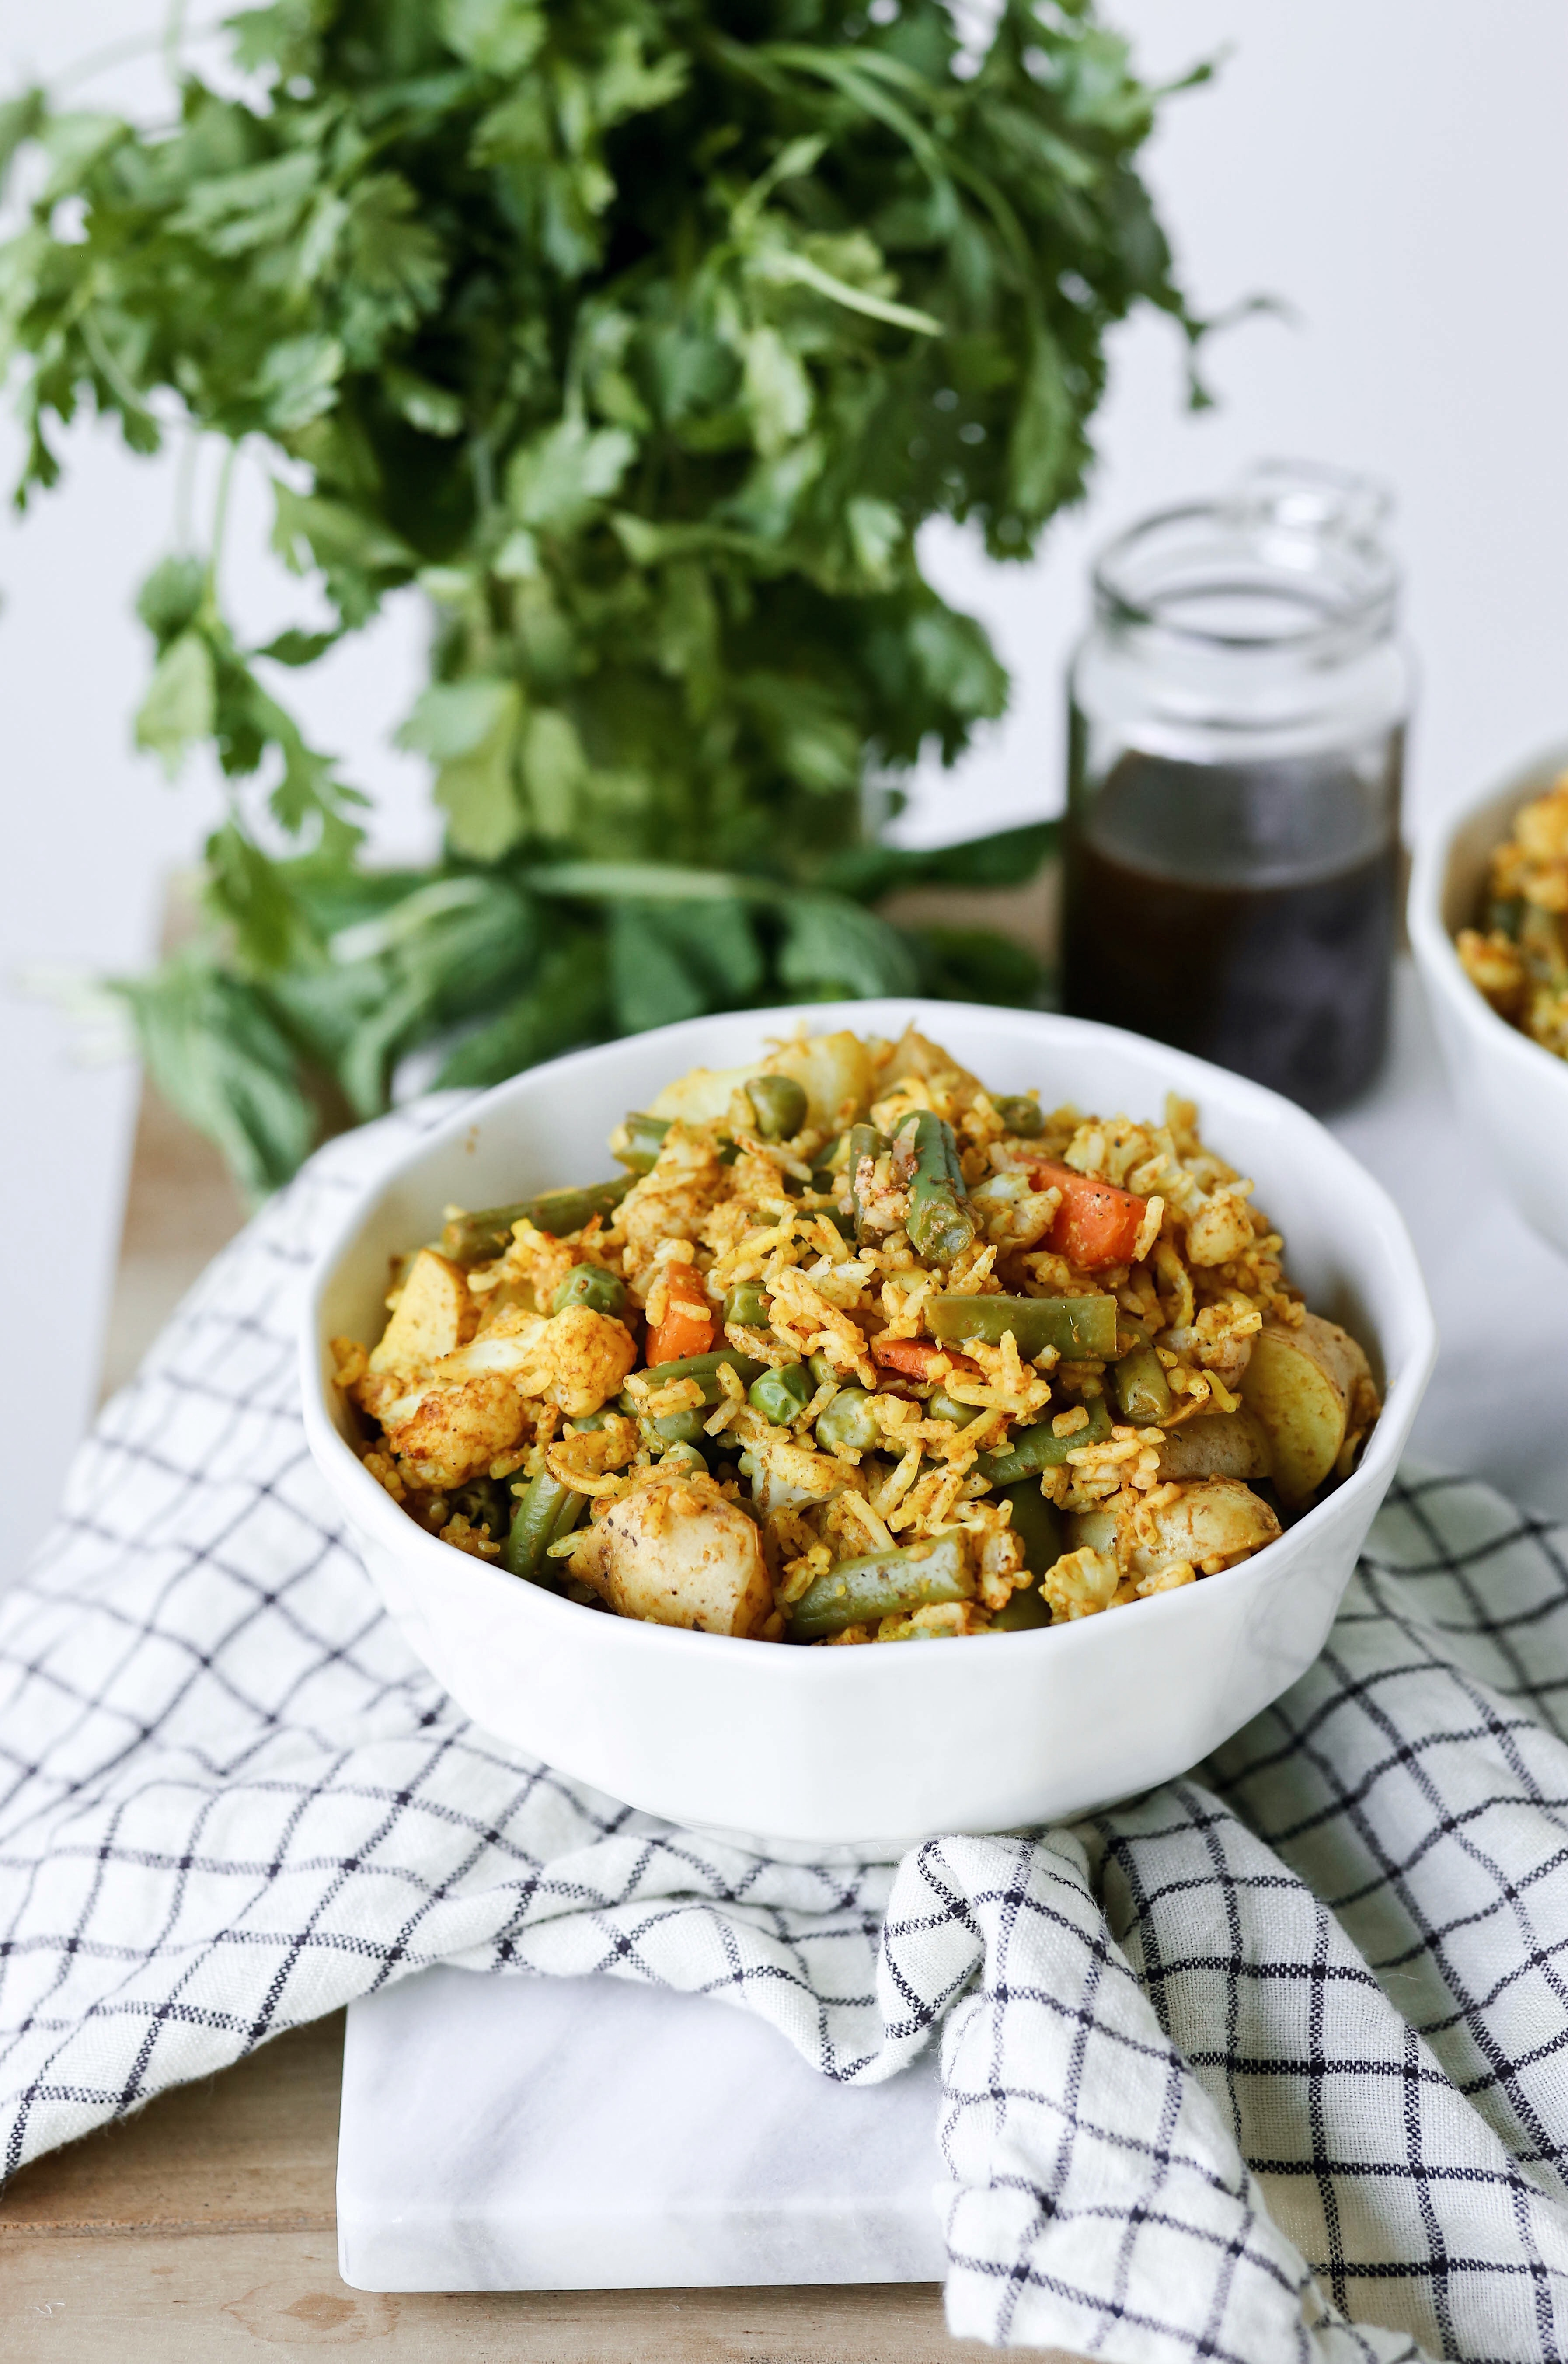 an easy vegetable biryani - vegetable filled rice dish from Indian cooking | this brown kitchen